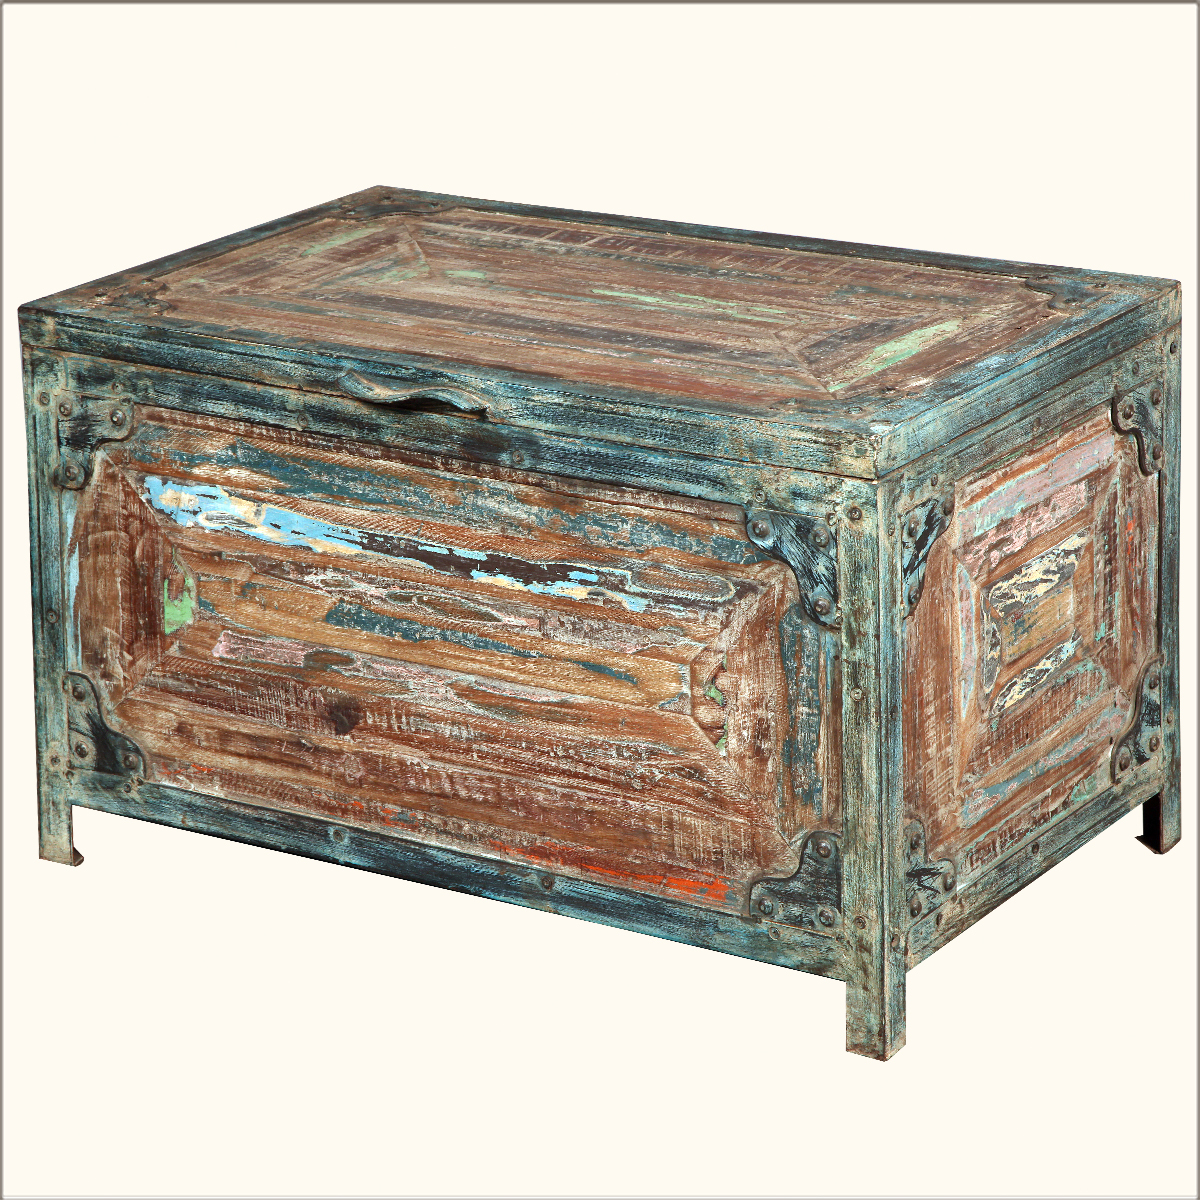 Industrial Iron Reclaimed Wood Rustic Storage Coffee Table Chest Trunk Ebay